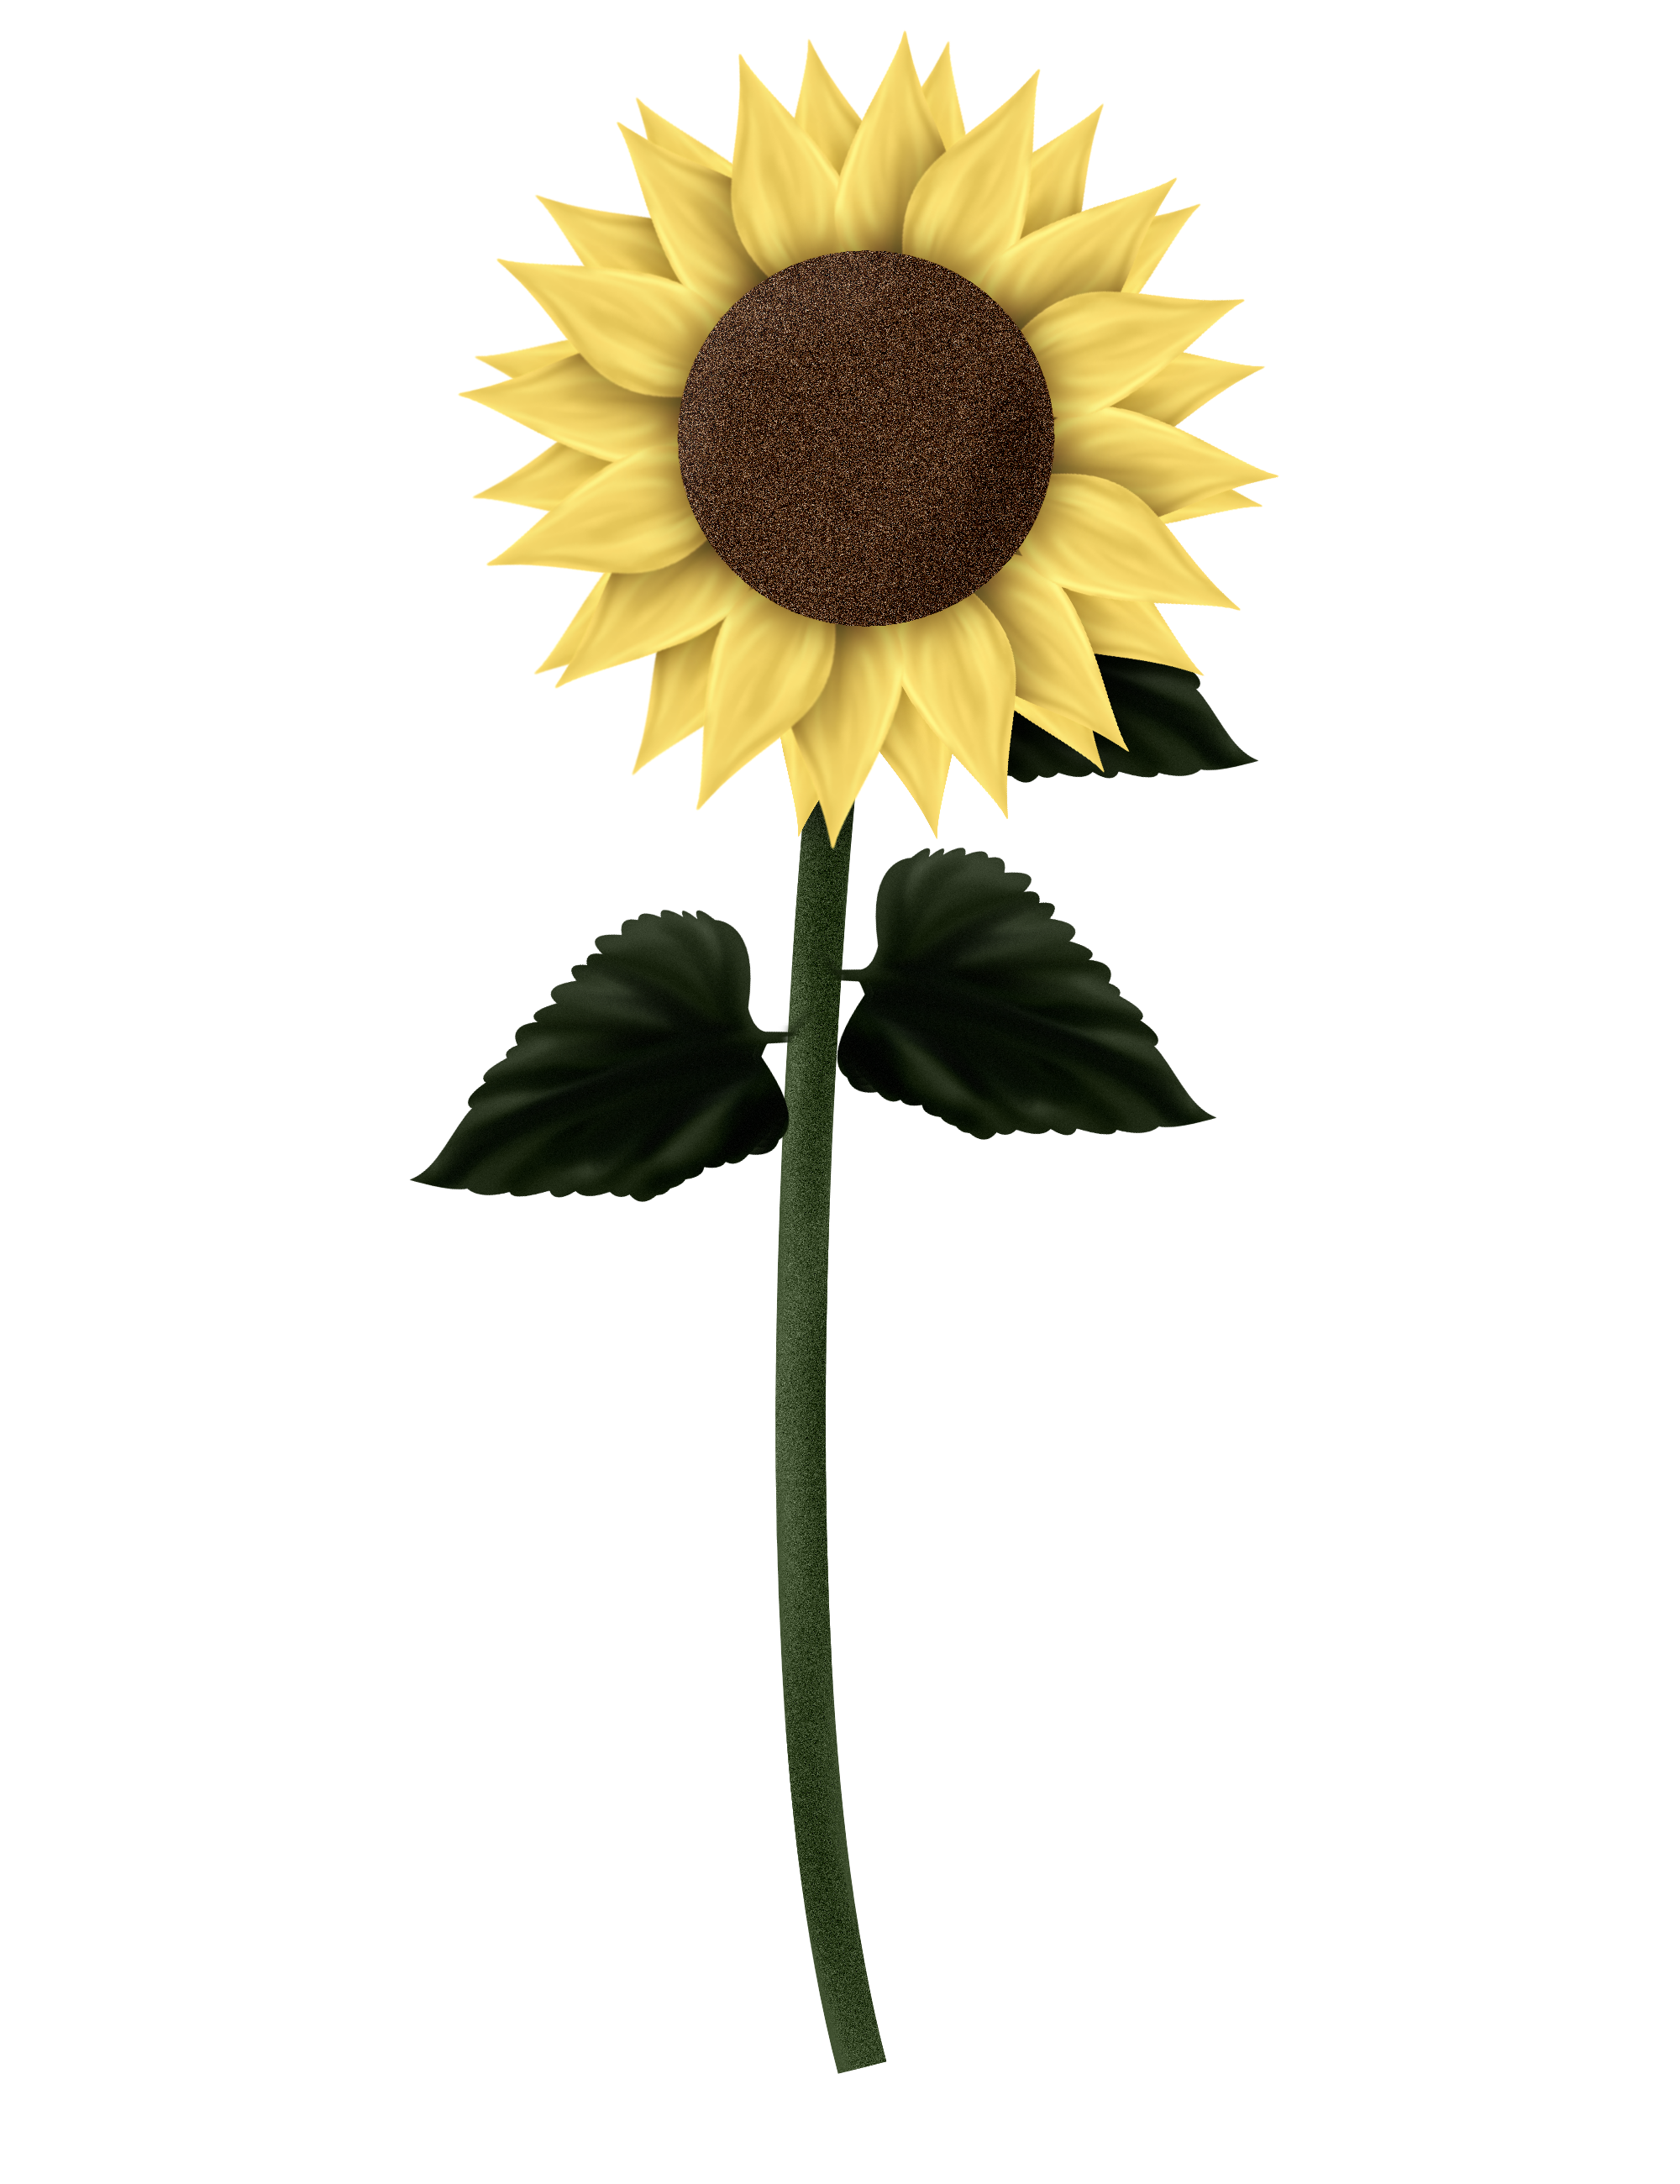 Leaves clipart sunflower. Sunflowers png transparent images